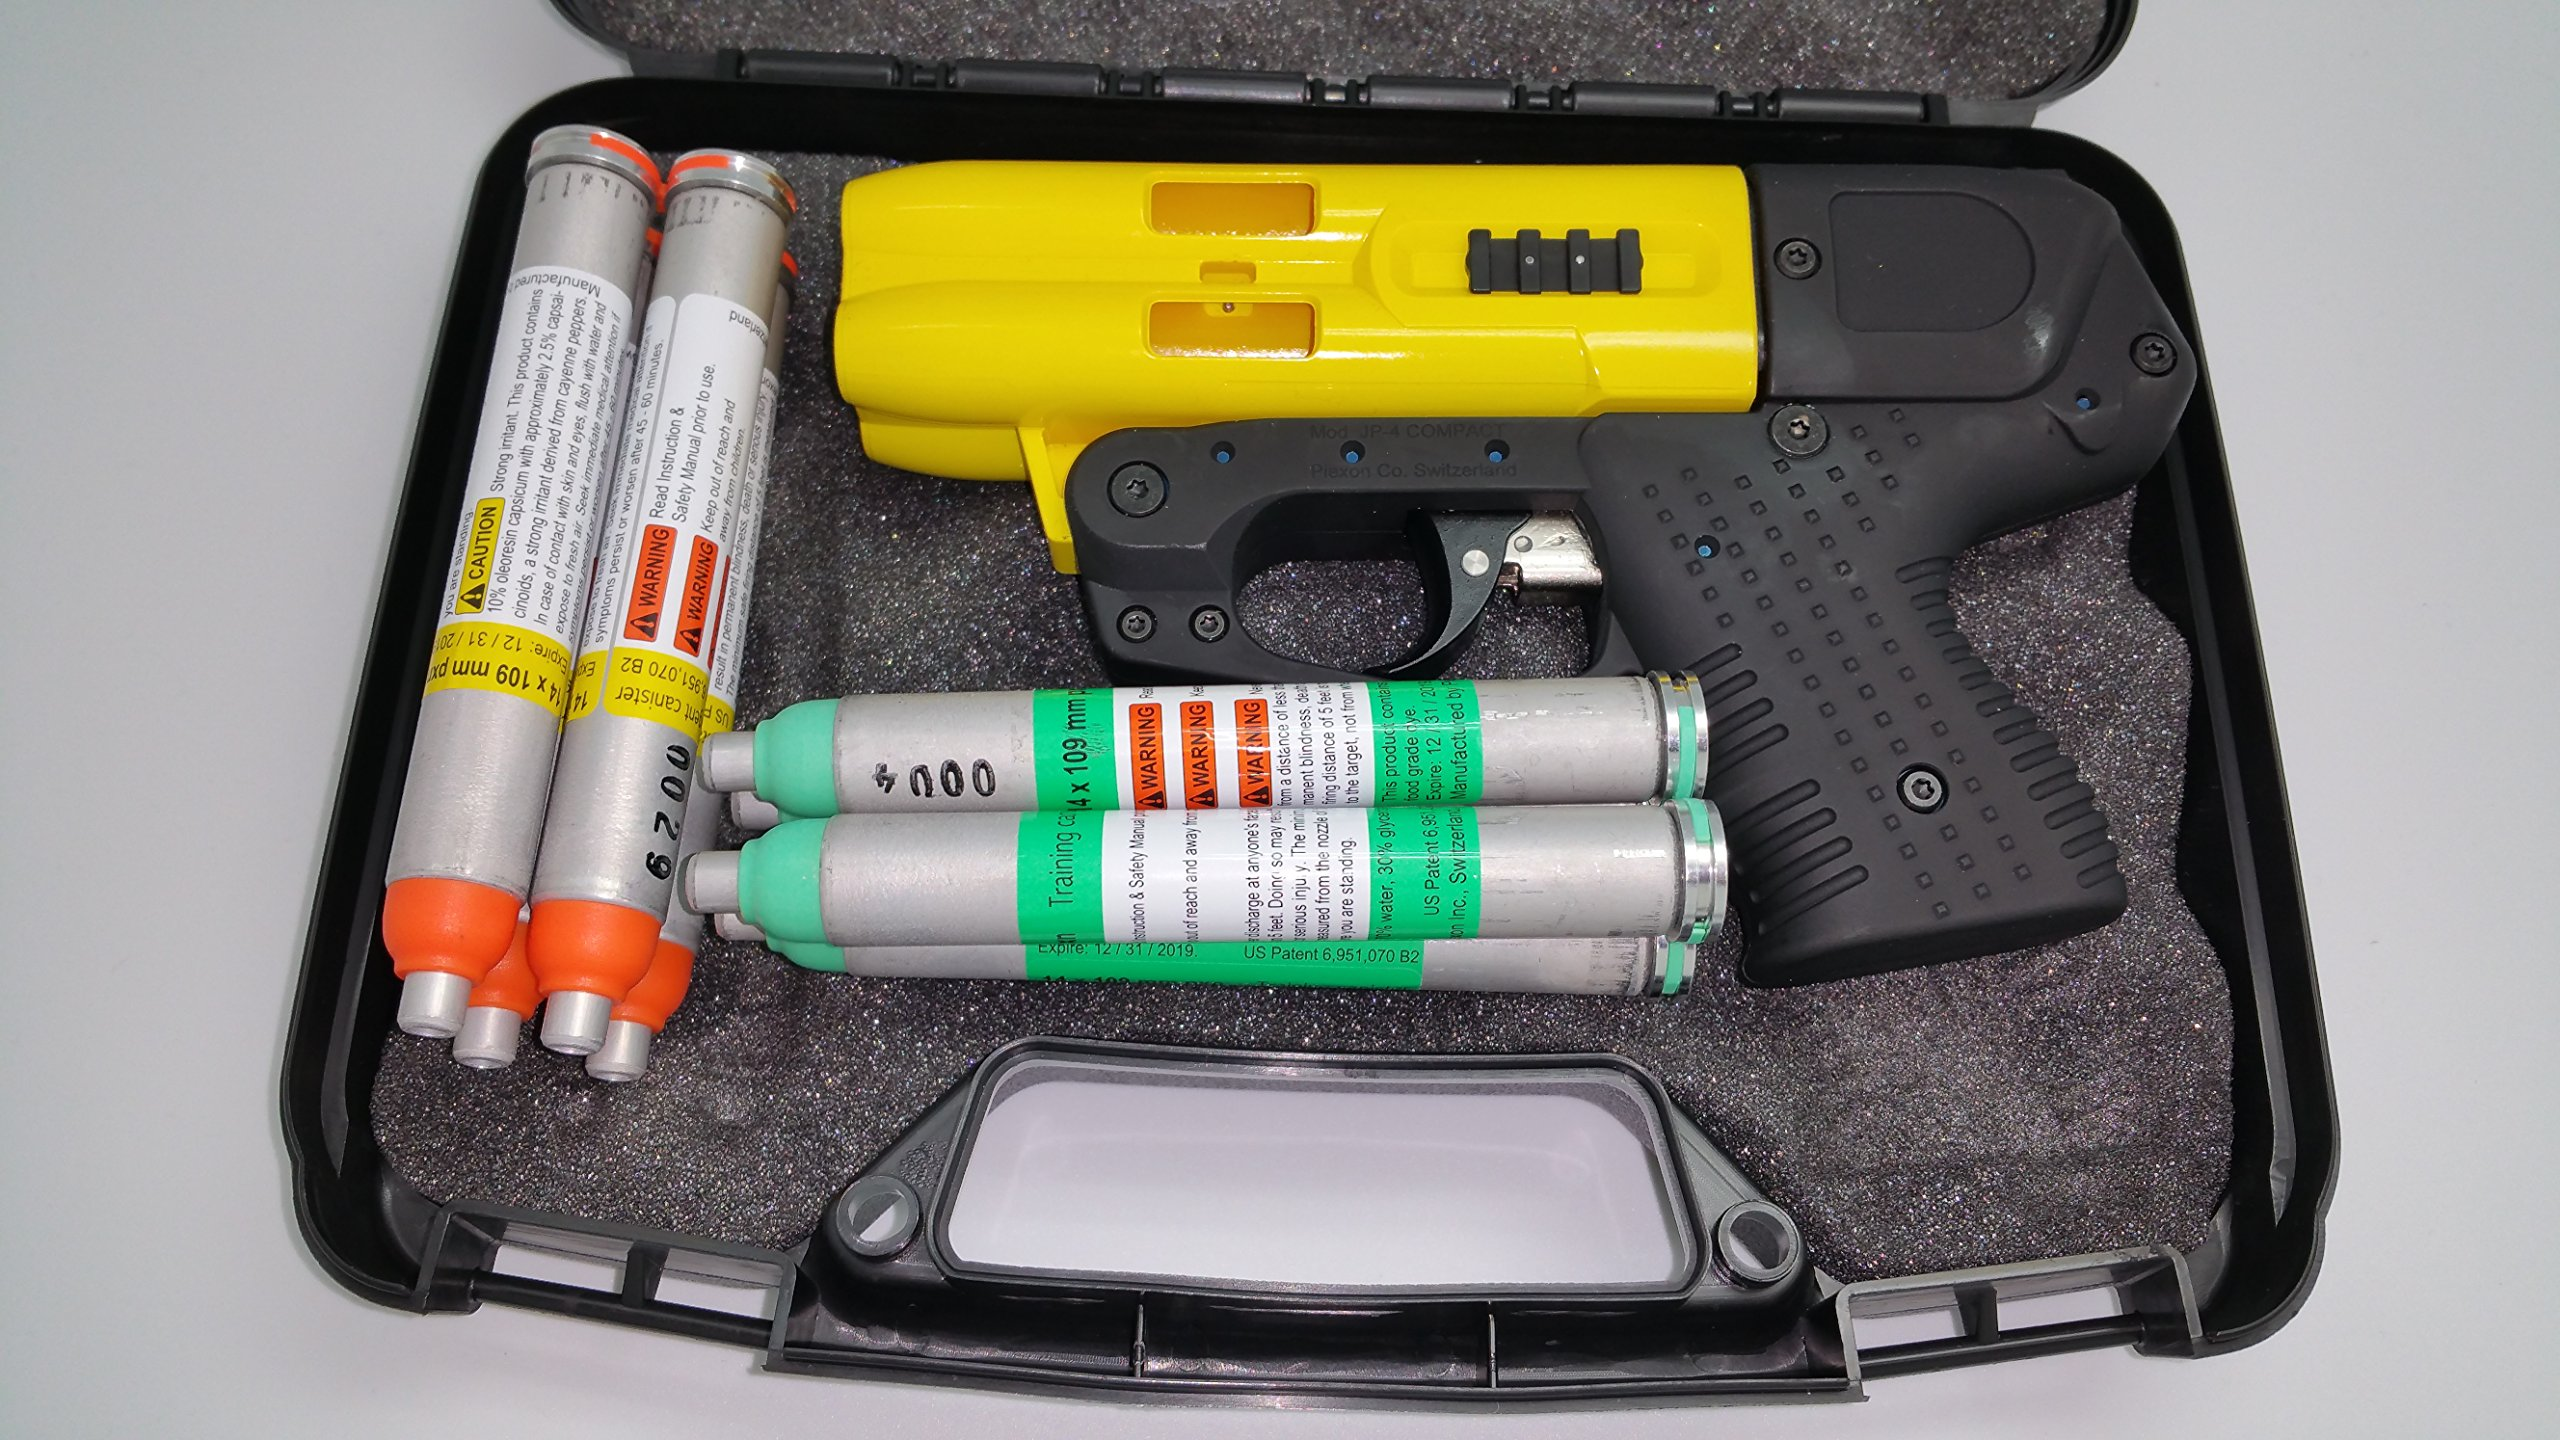 4 Shot Compact Pepper Spray Gun Bundle by Piexon